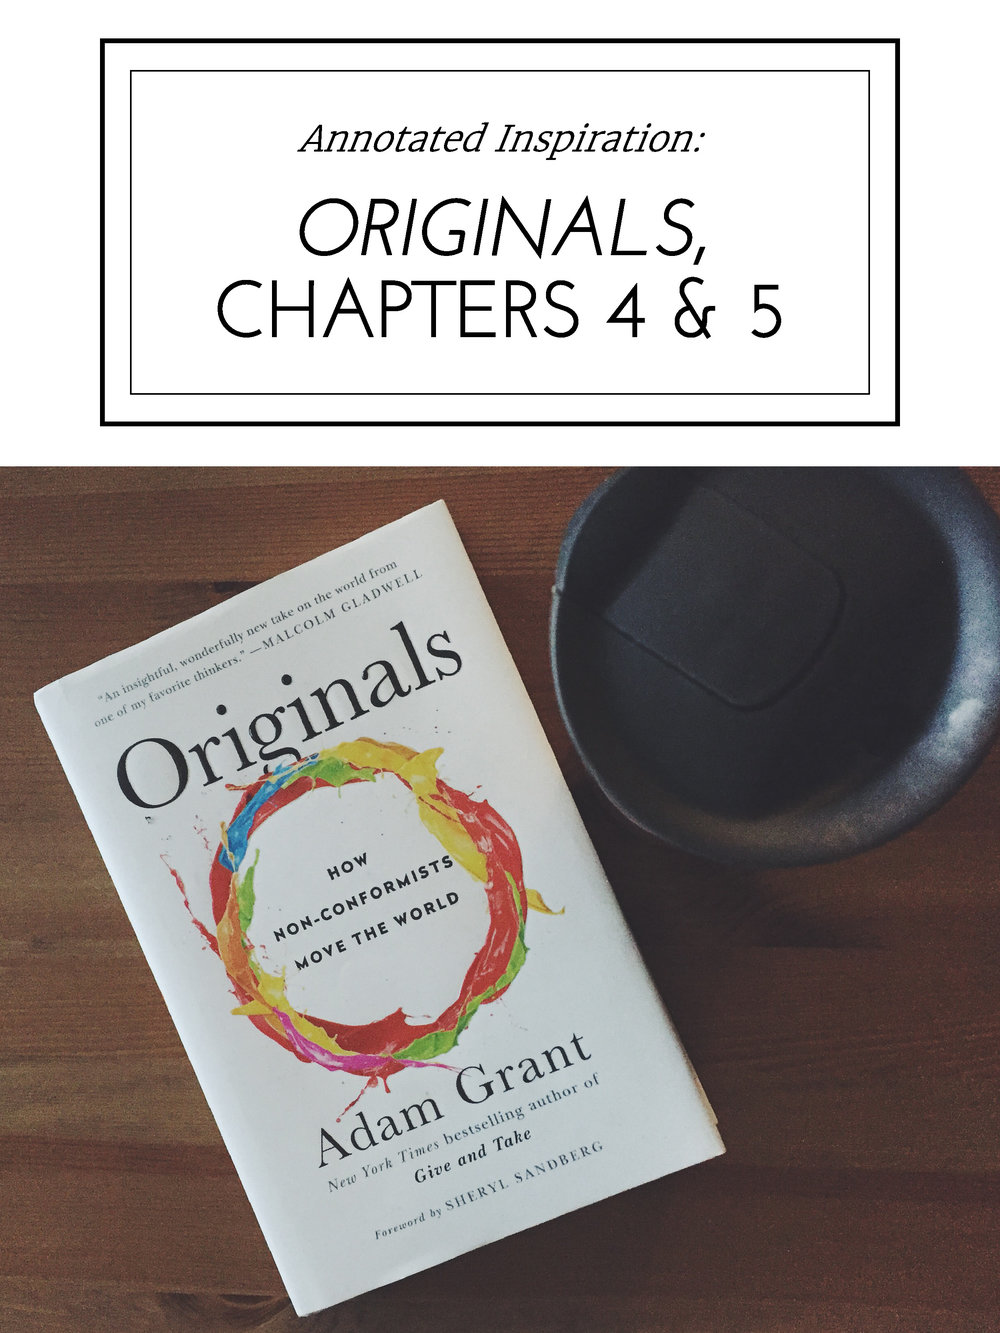 Annotated Inspiration: Originals, Chapters 4 & 5